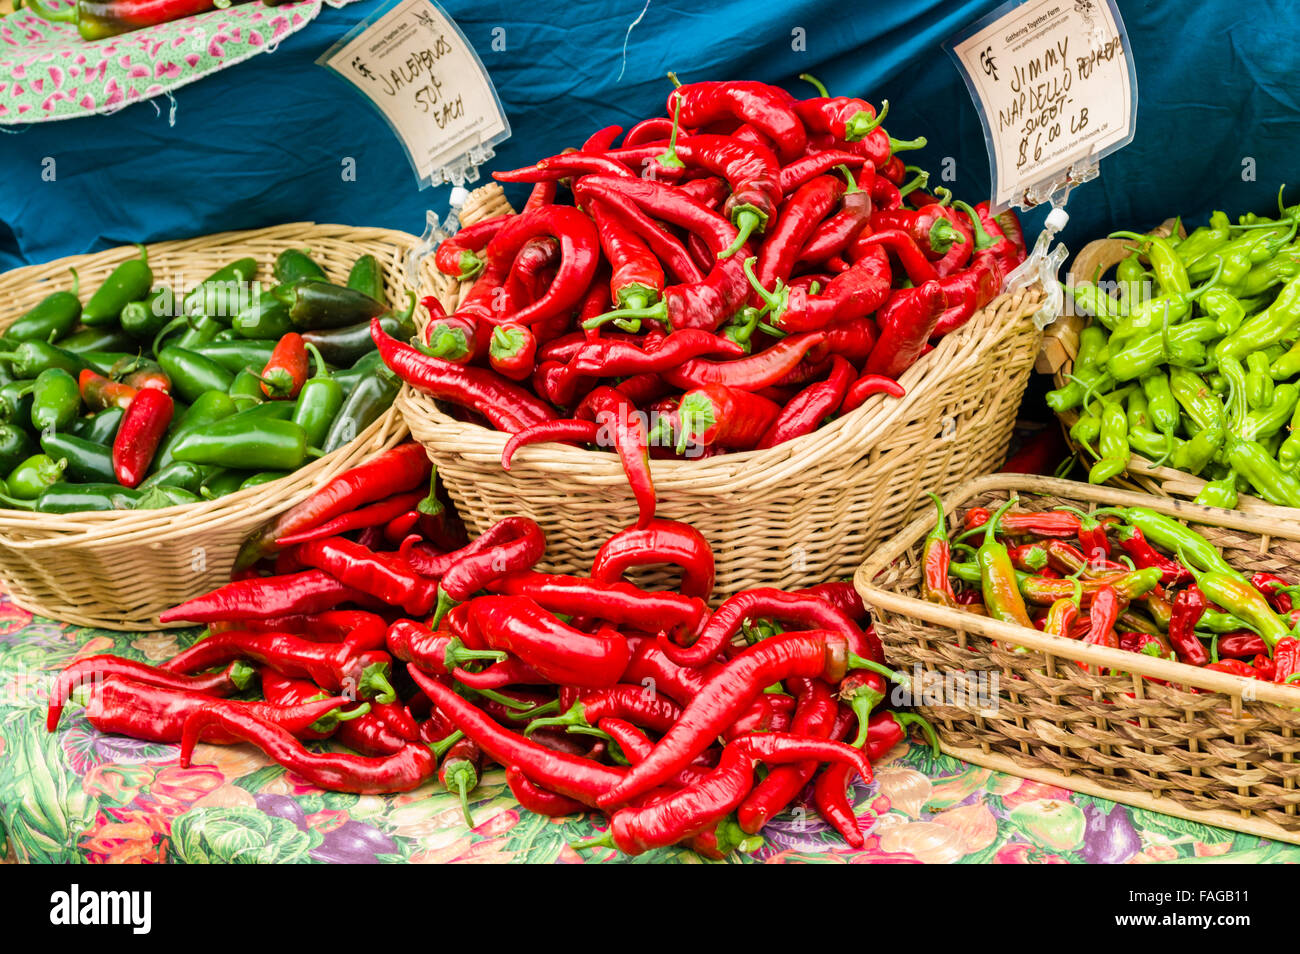 Baskets of red and green hot peppers on display at a farmer's market